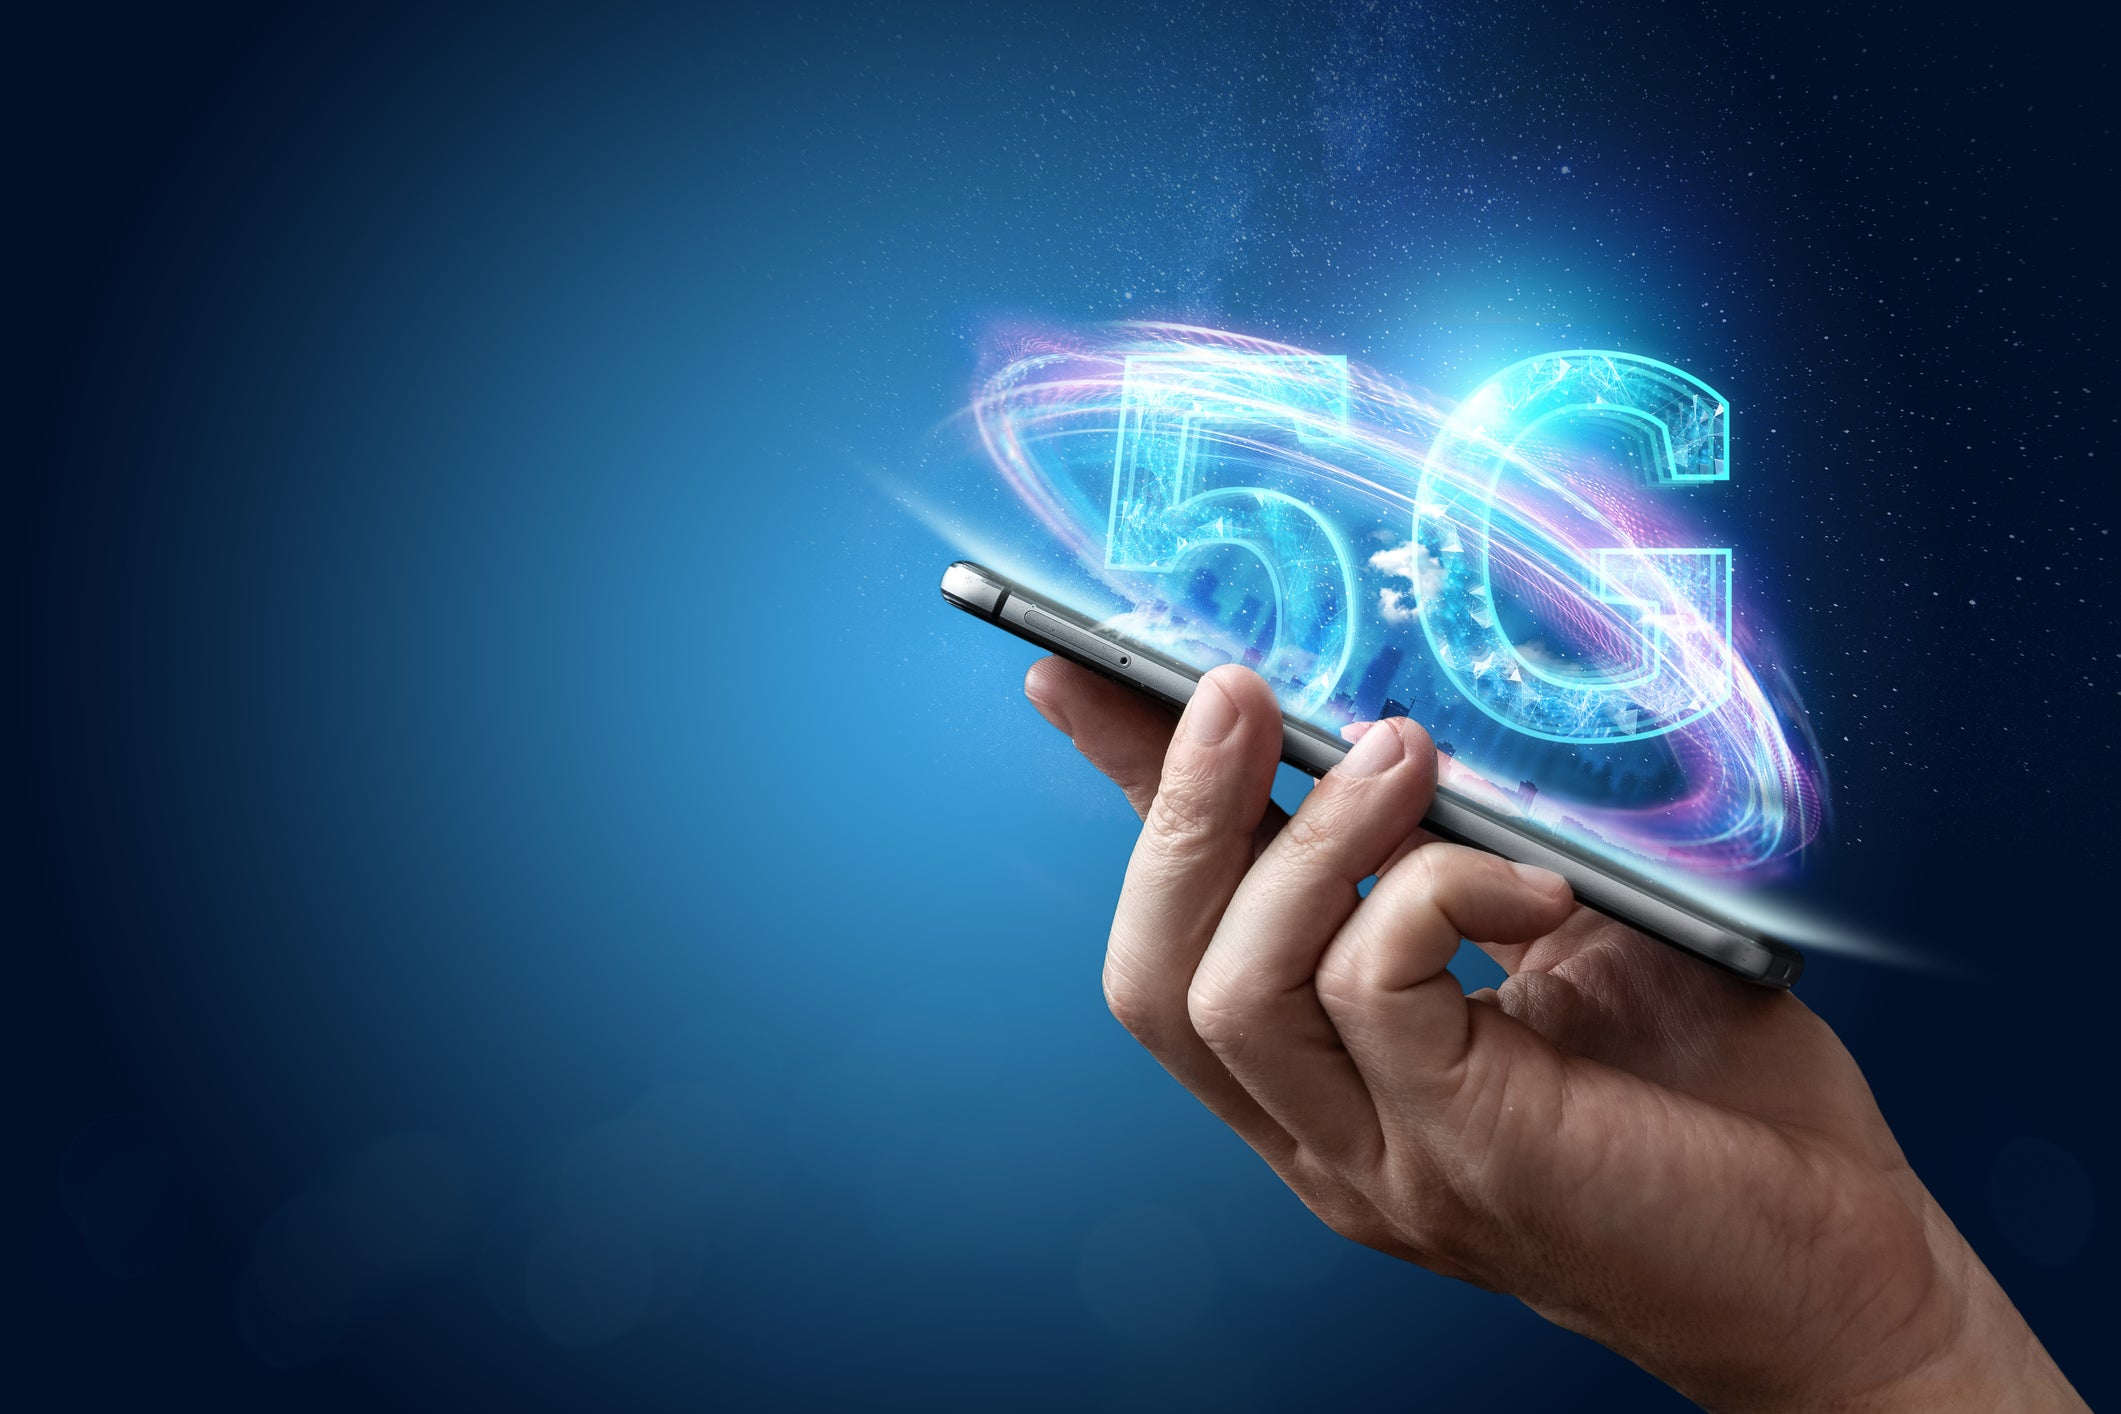 Up 85% in 5 Months, This 5G Stock Looks Set to Soar Higher